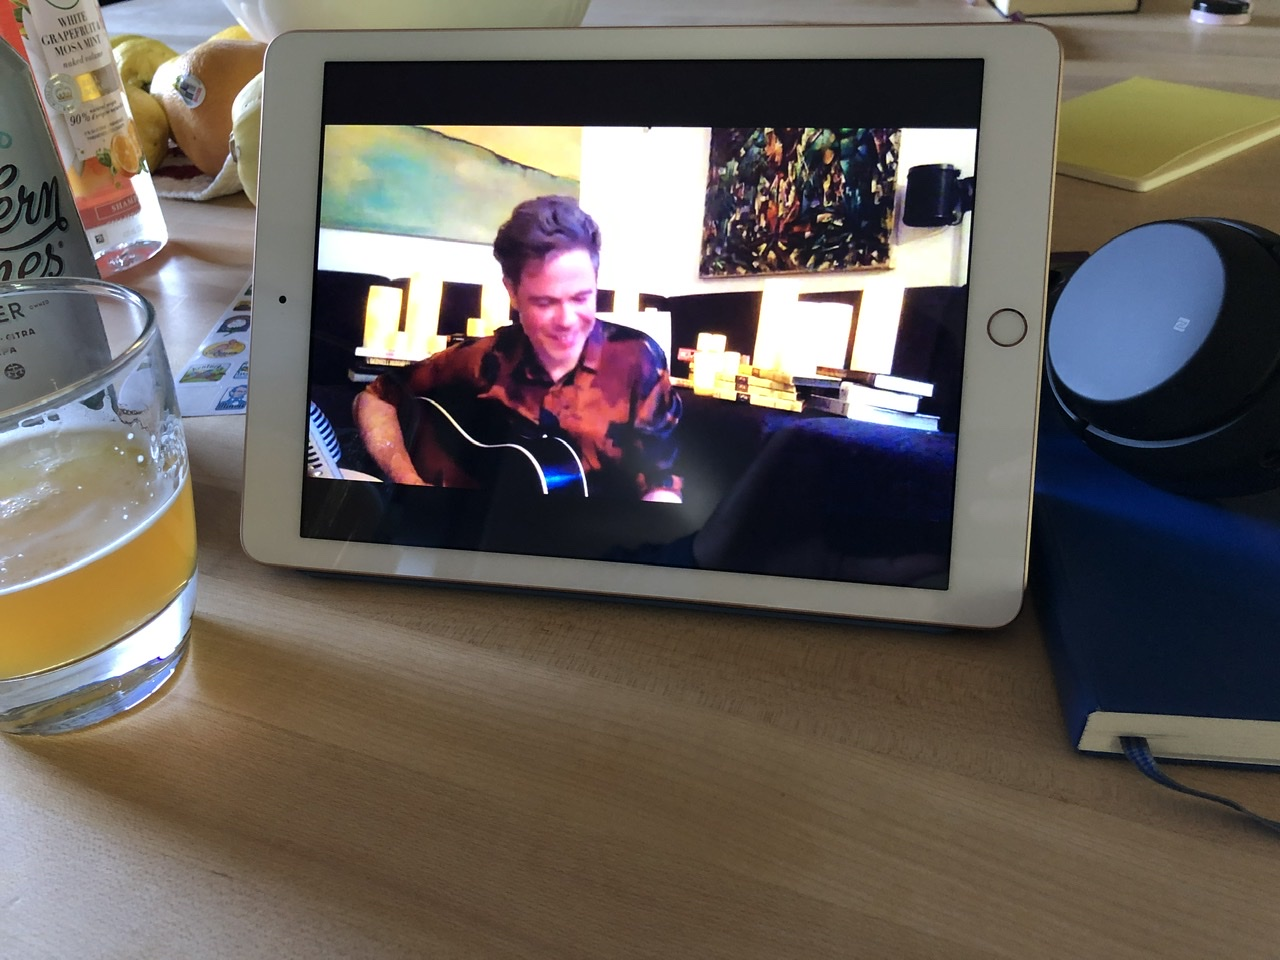 Photo of an iPad on a wooden counter, showing Josh Ritter playing a guitar